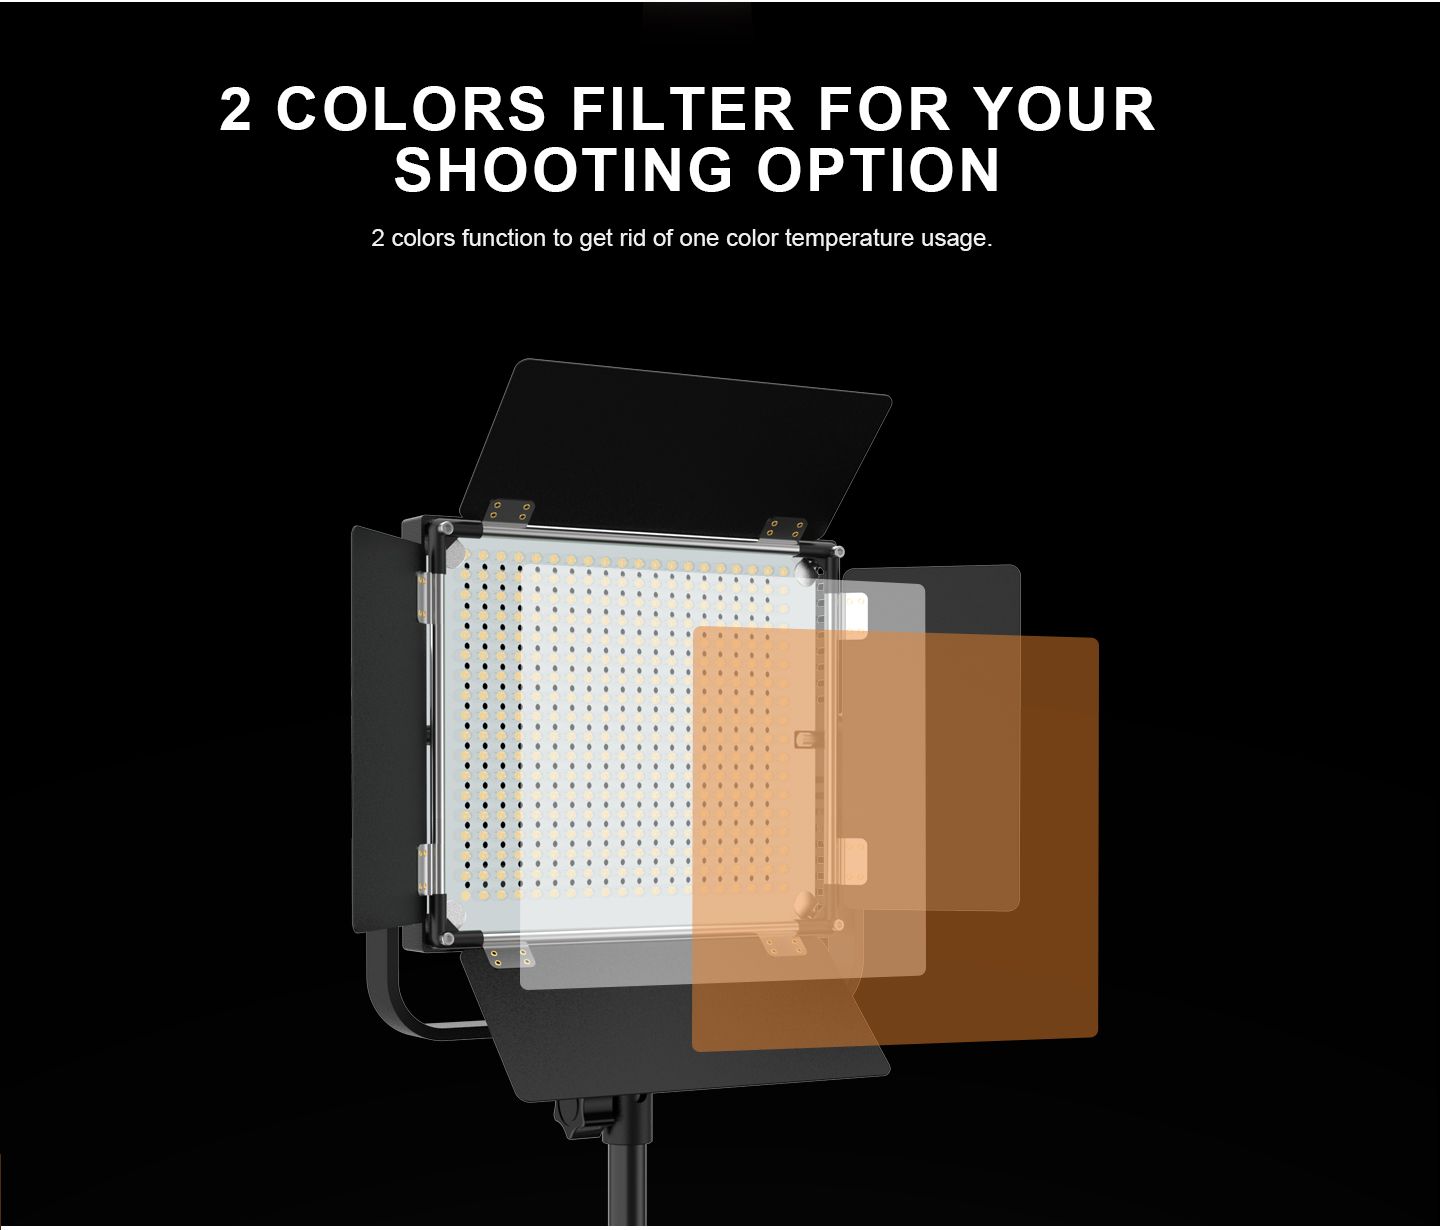 2 COLORS FILTER FO YOUR SHOOTING OPTION